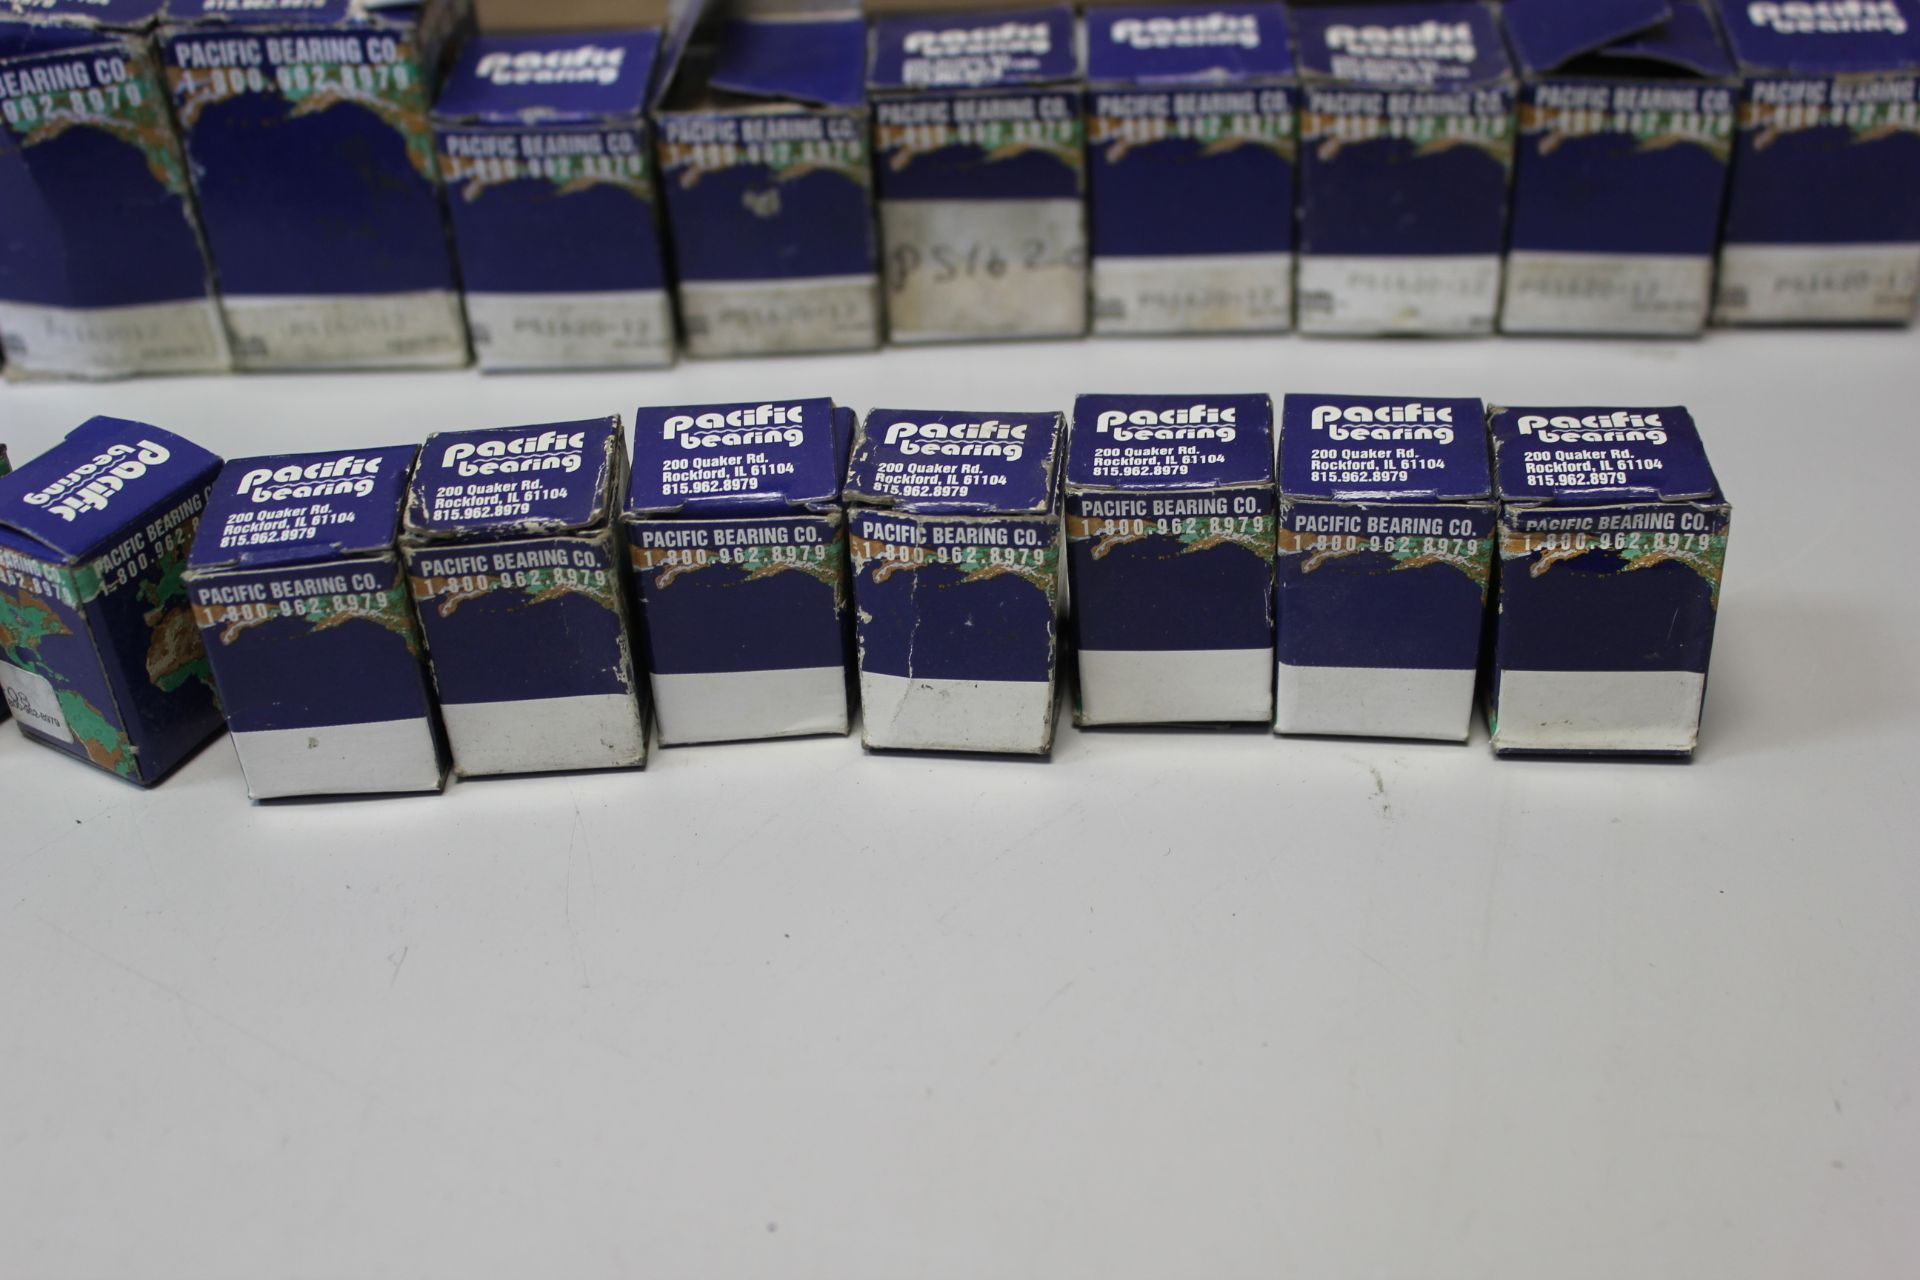 LOT OF NEW PACIFIC ROLLER BEARINGS - Image 5 of 8